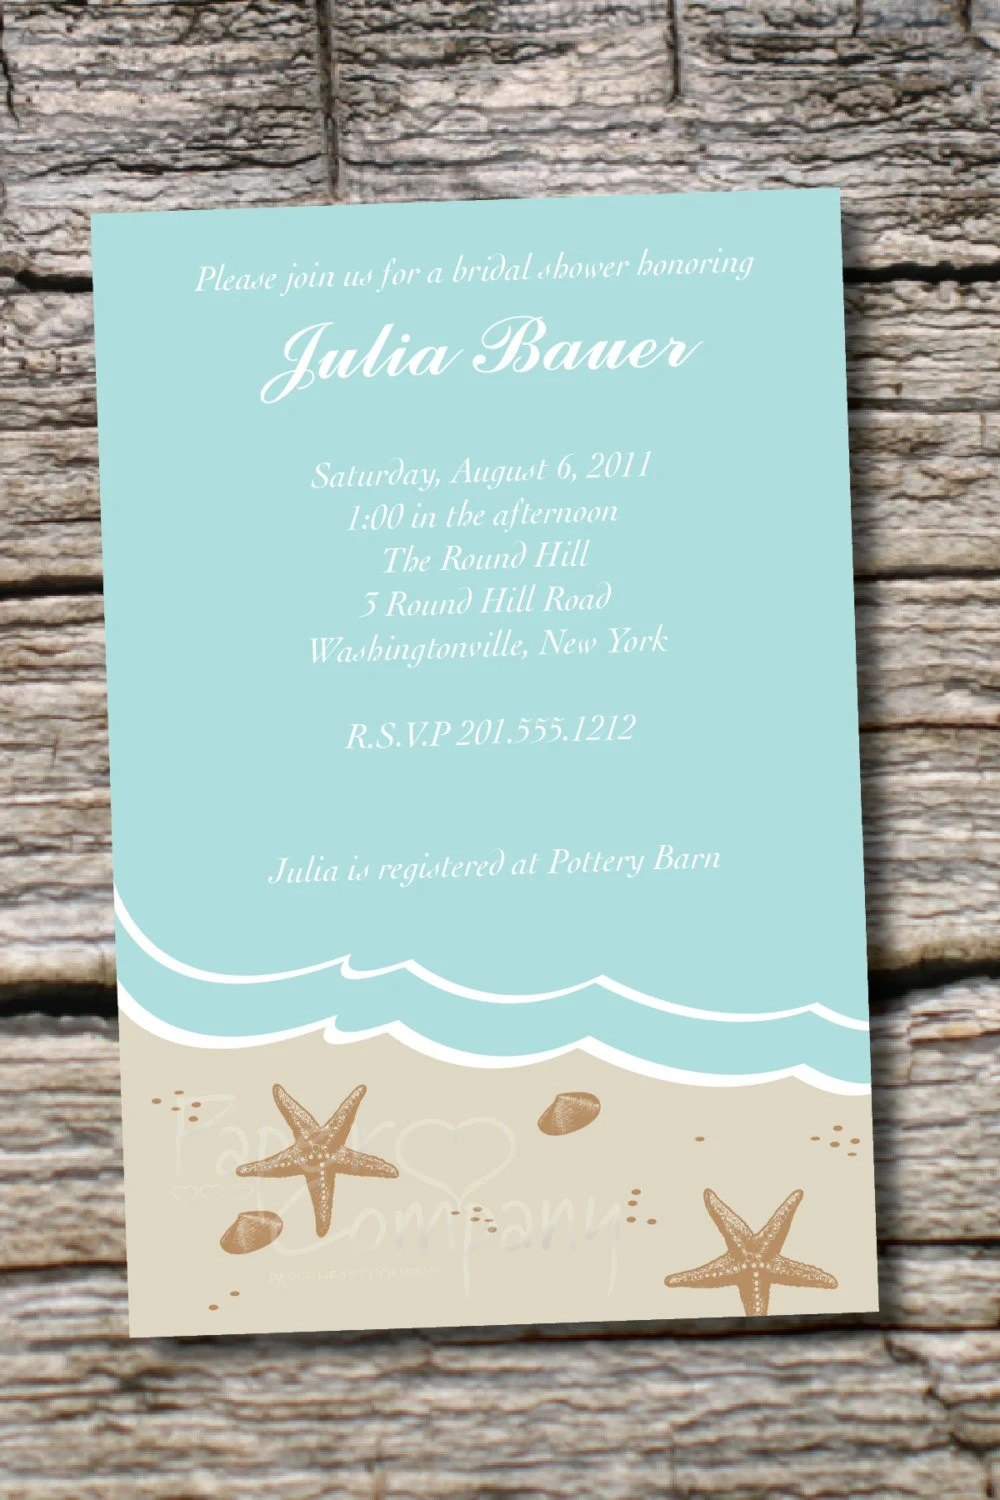 Bridal Shower Invitations Requesting Money